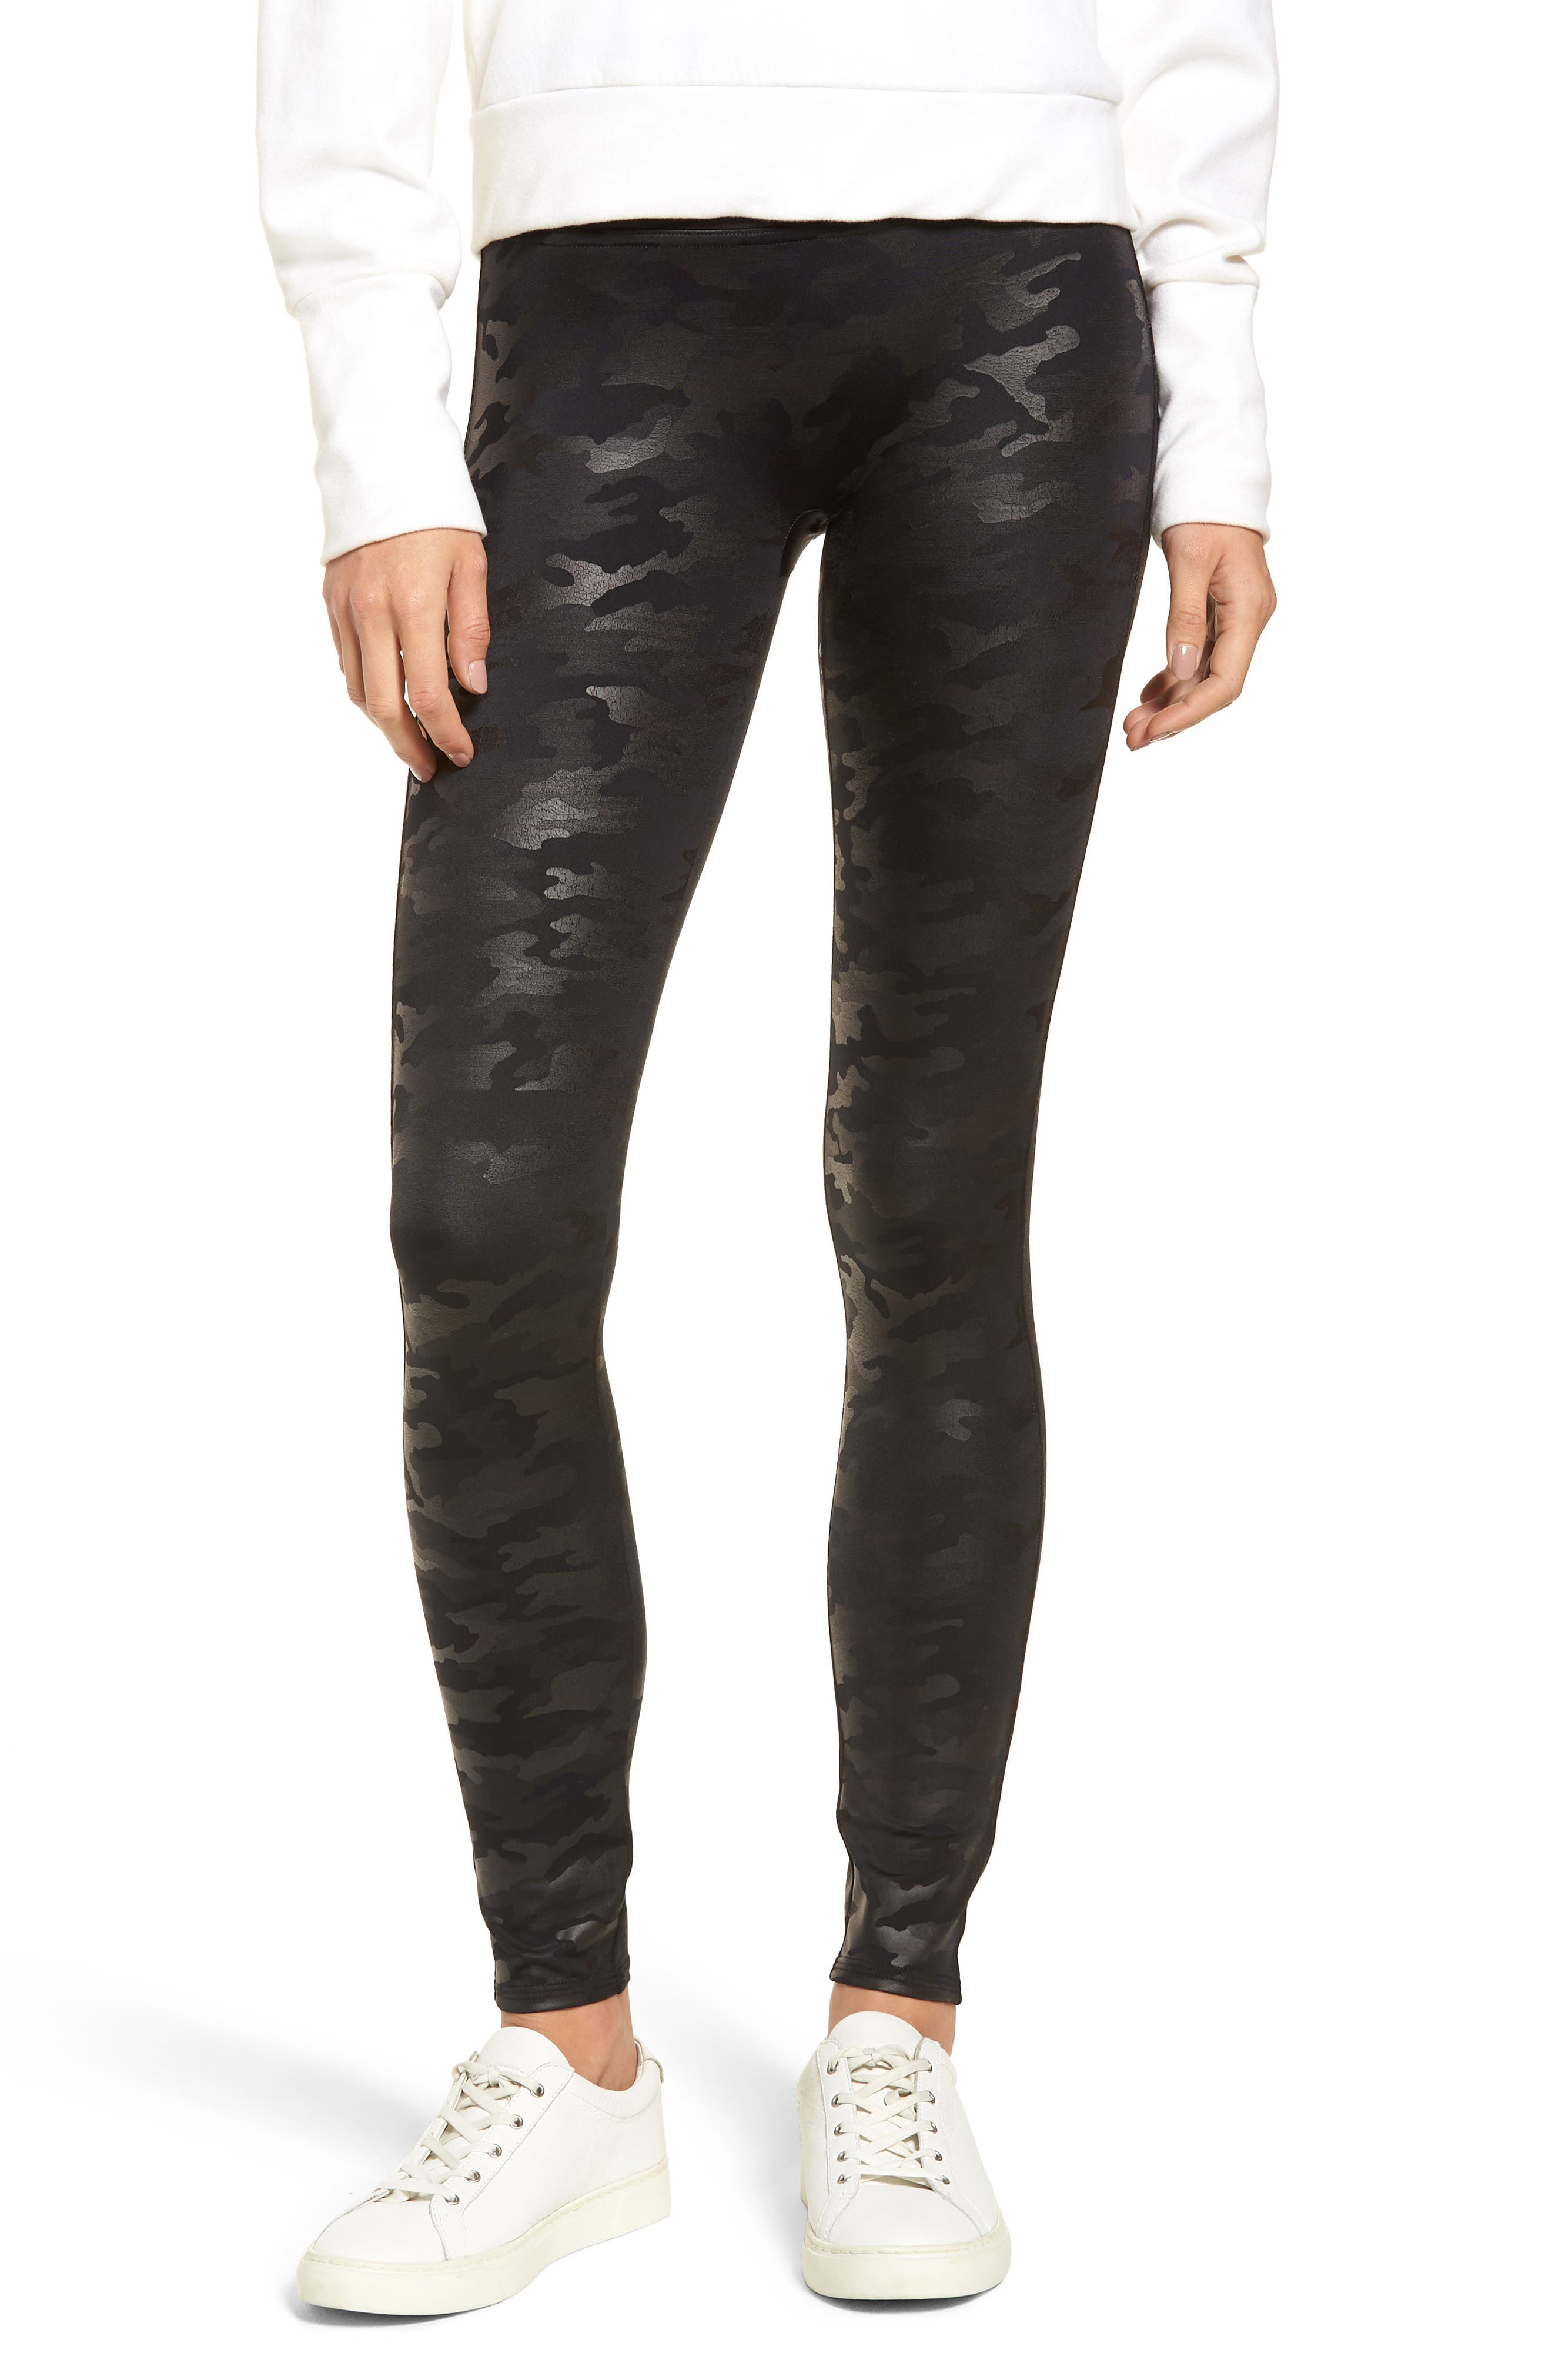 Wear you Trendswould baggy faux leather pants exclusive photo